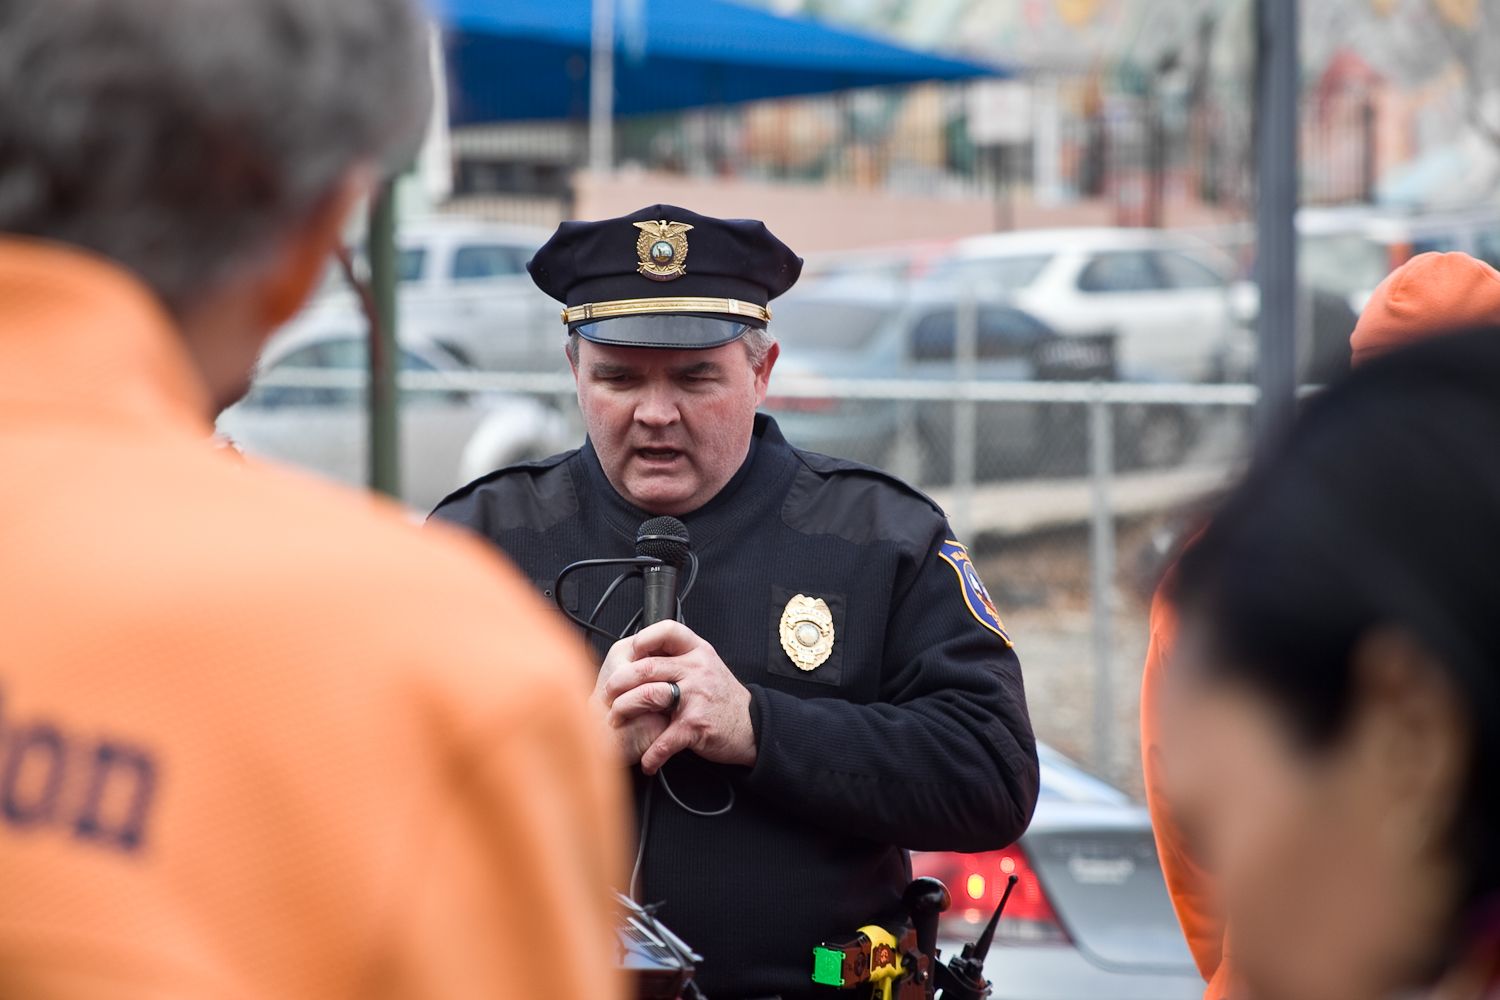 A Wilmington police officer, is handed the microphone to speak to the marchers at the Martin Luther King Jr. Day march in Wilmington, Delaware on January 19, 2015